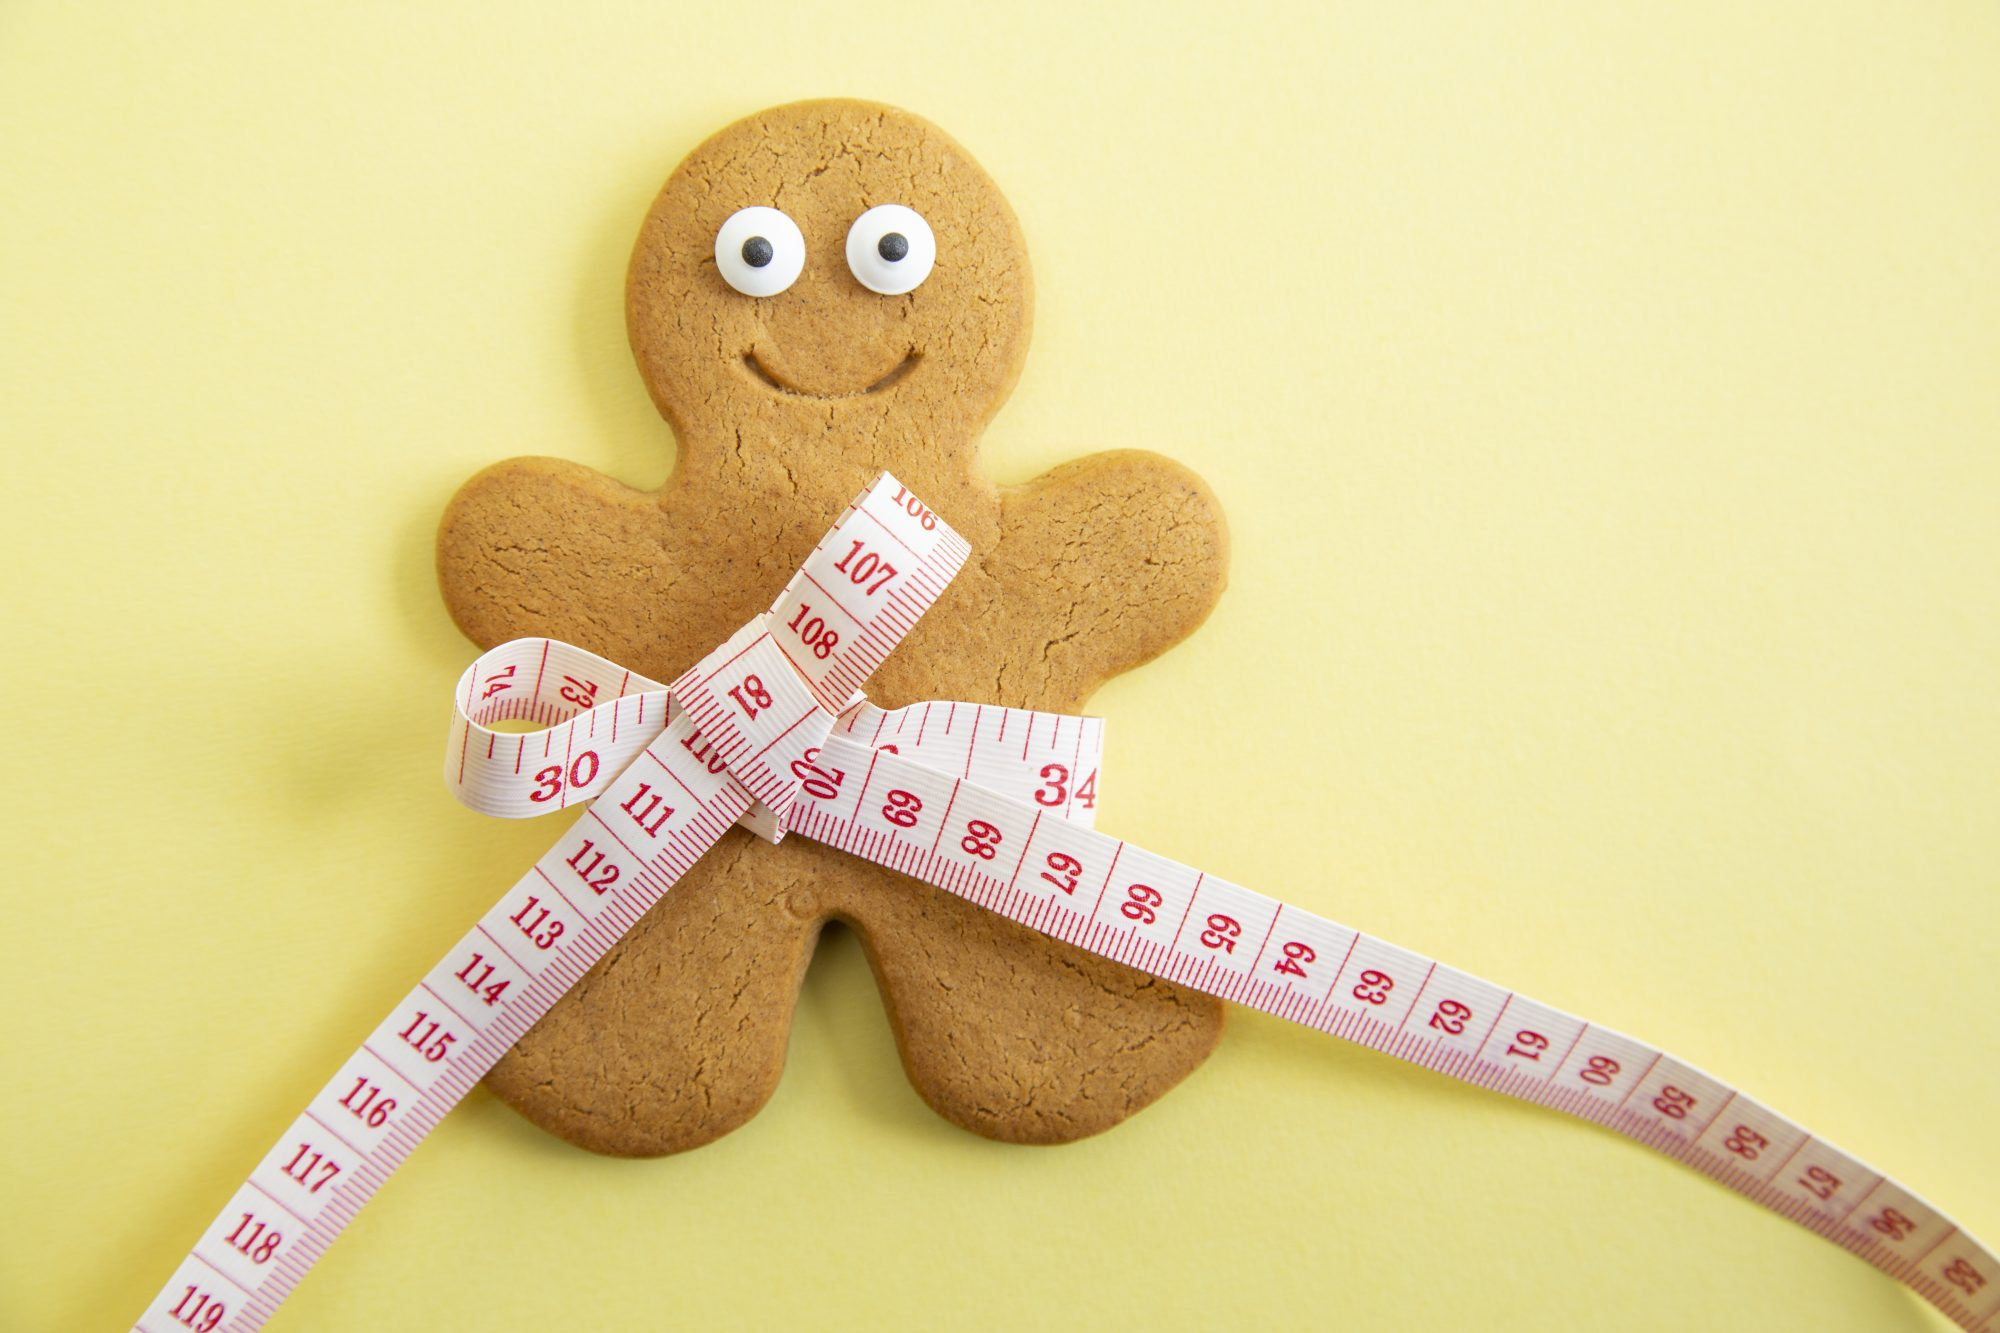 Gingerbread Man with Tape Measurer